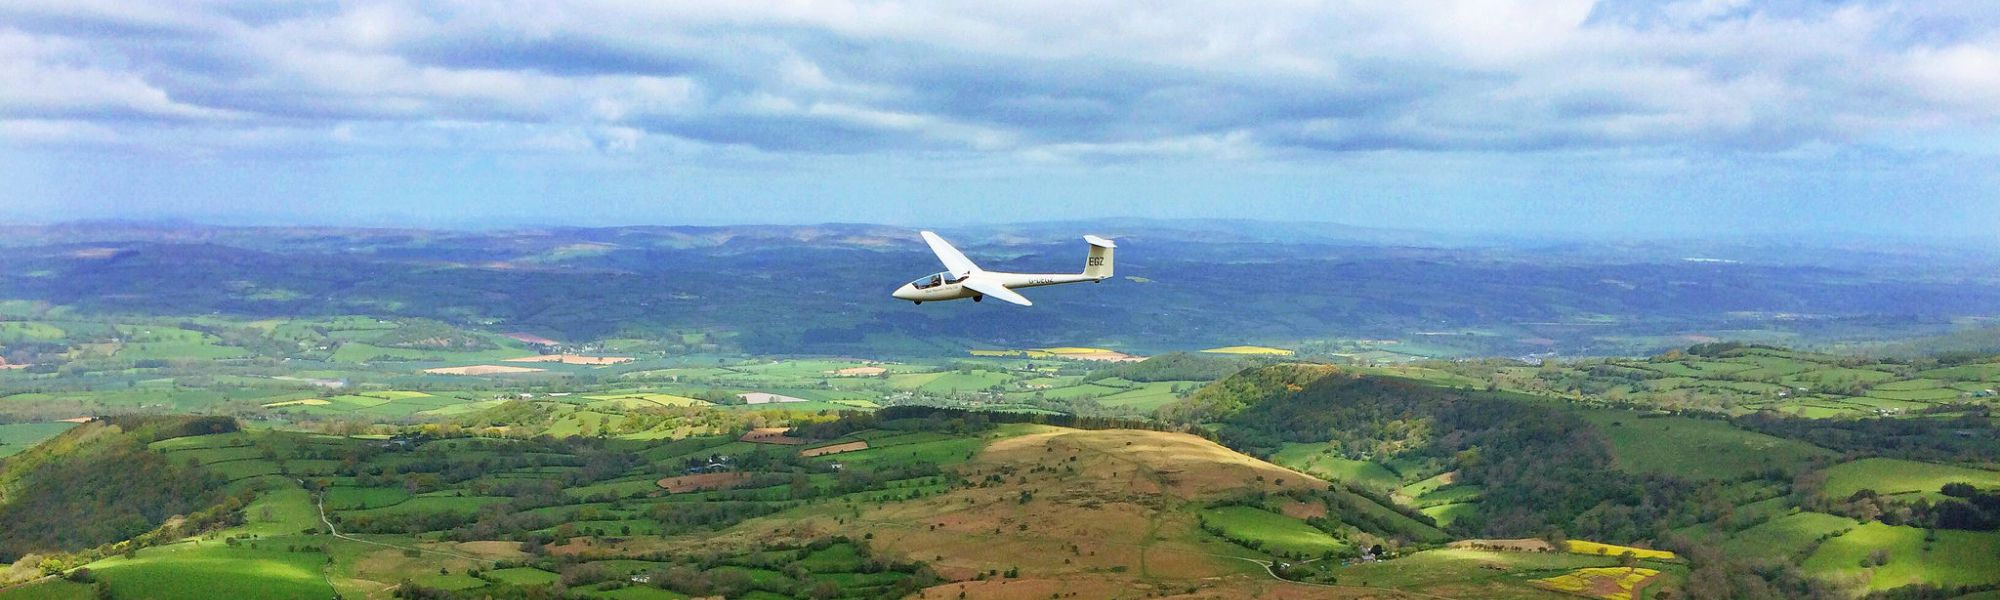 Gliding near the Black Mountains, Hay-on-Wye